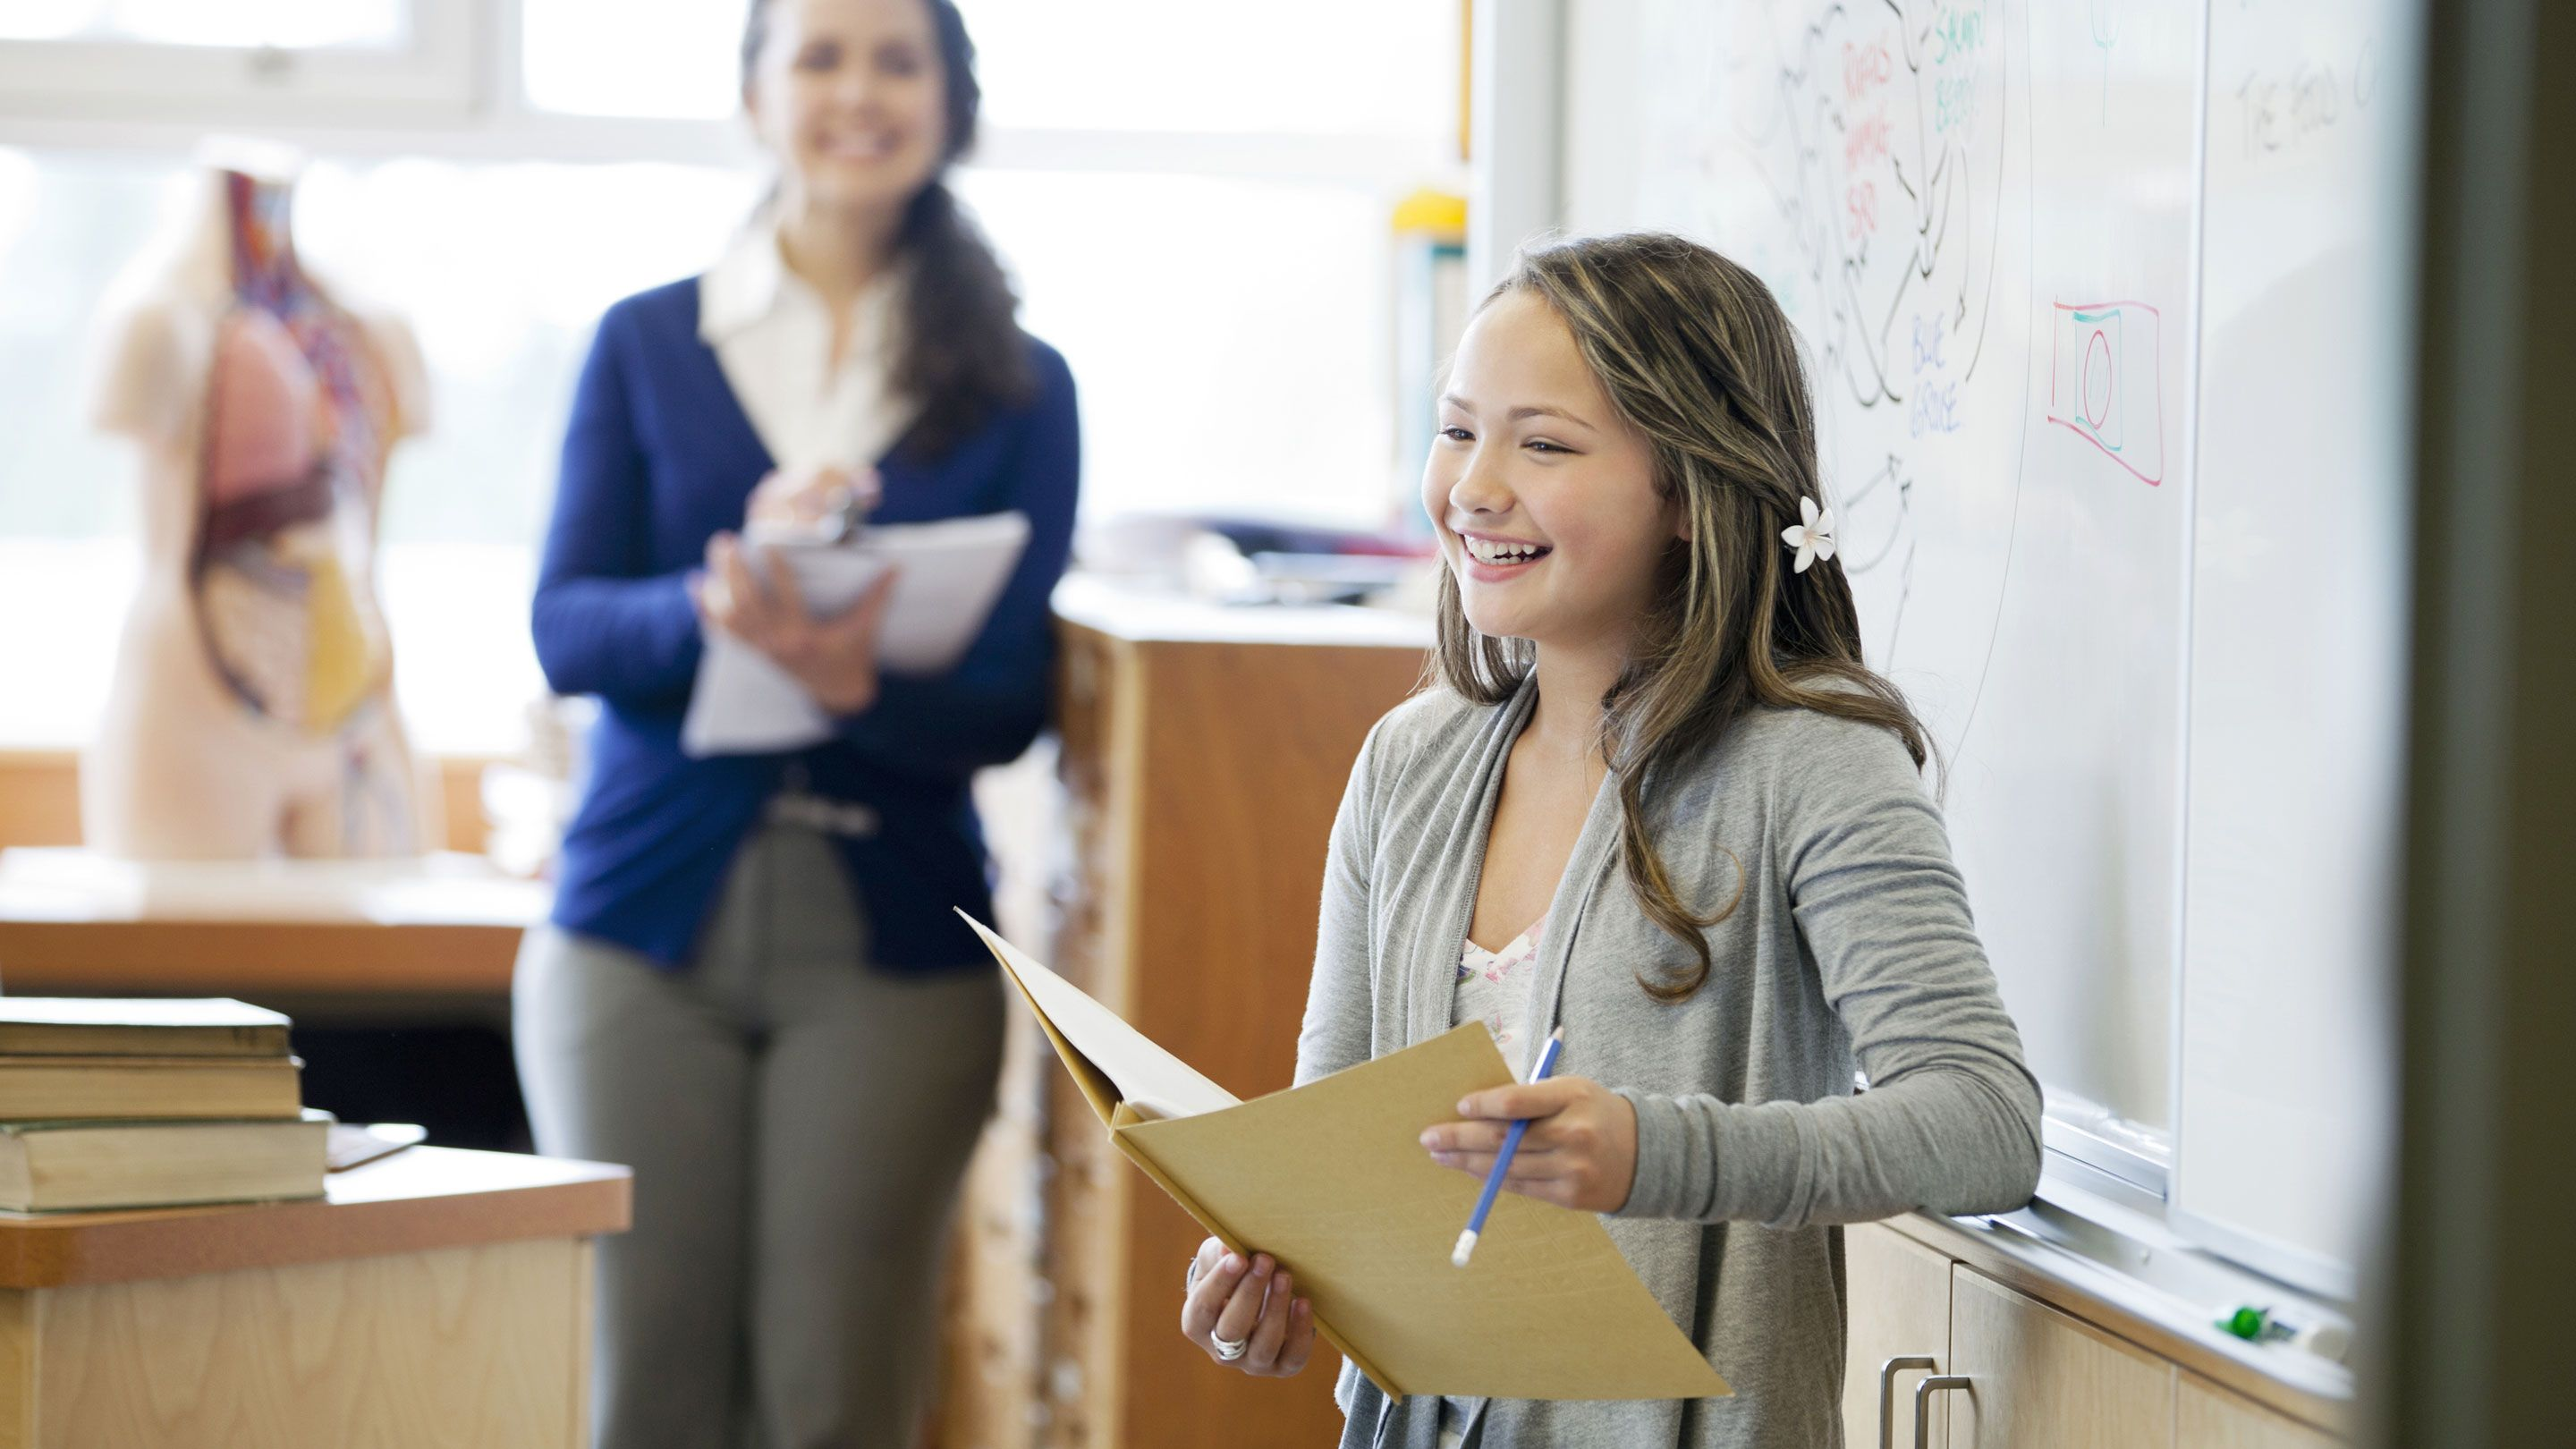 A student confidently speaks to her class as her teacher smiles in the background.